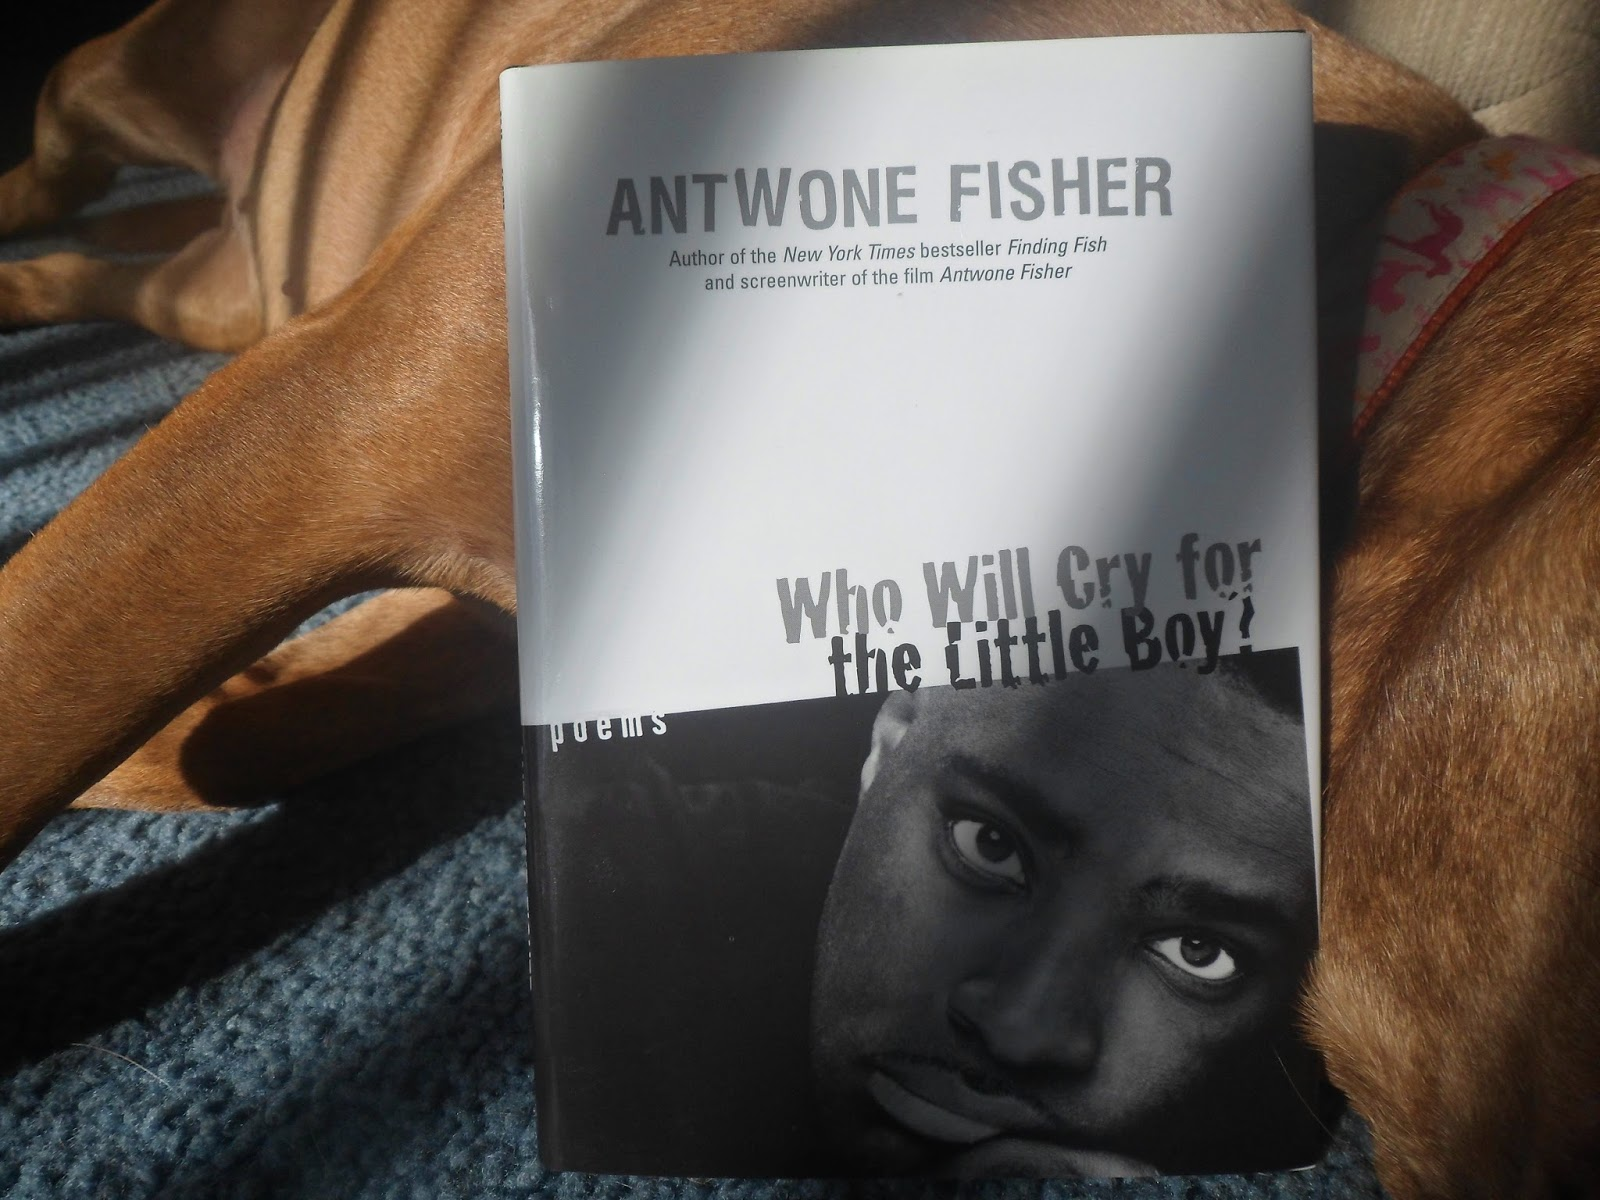 2016 a man many hats antwone fisher is best known for his autobiography finding fish and the film that it inspired antwone fisher which was helmed by